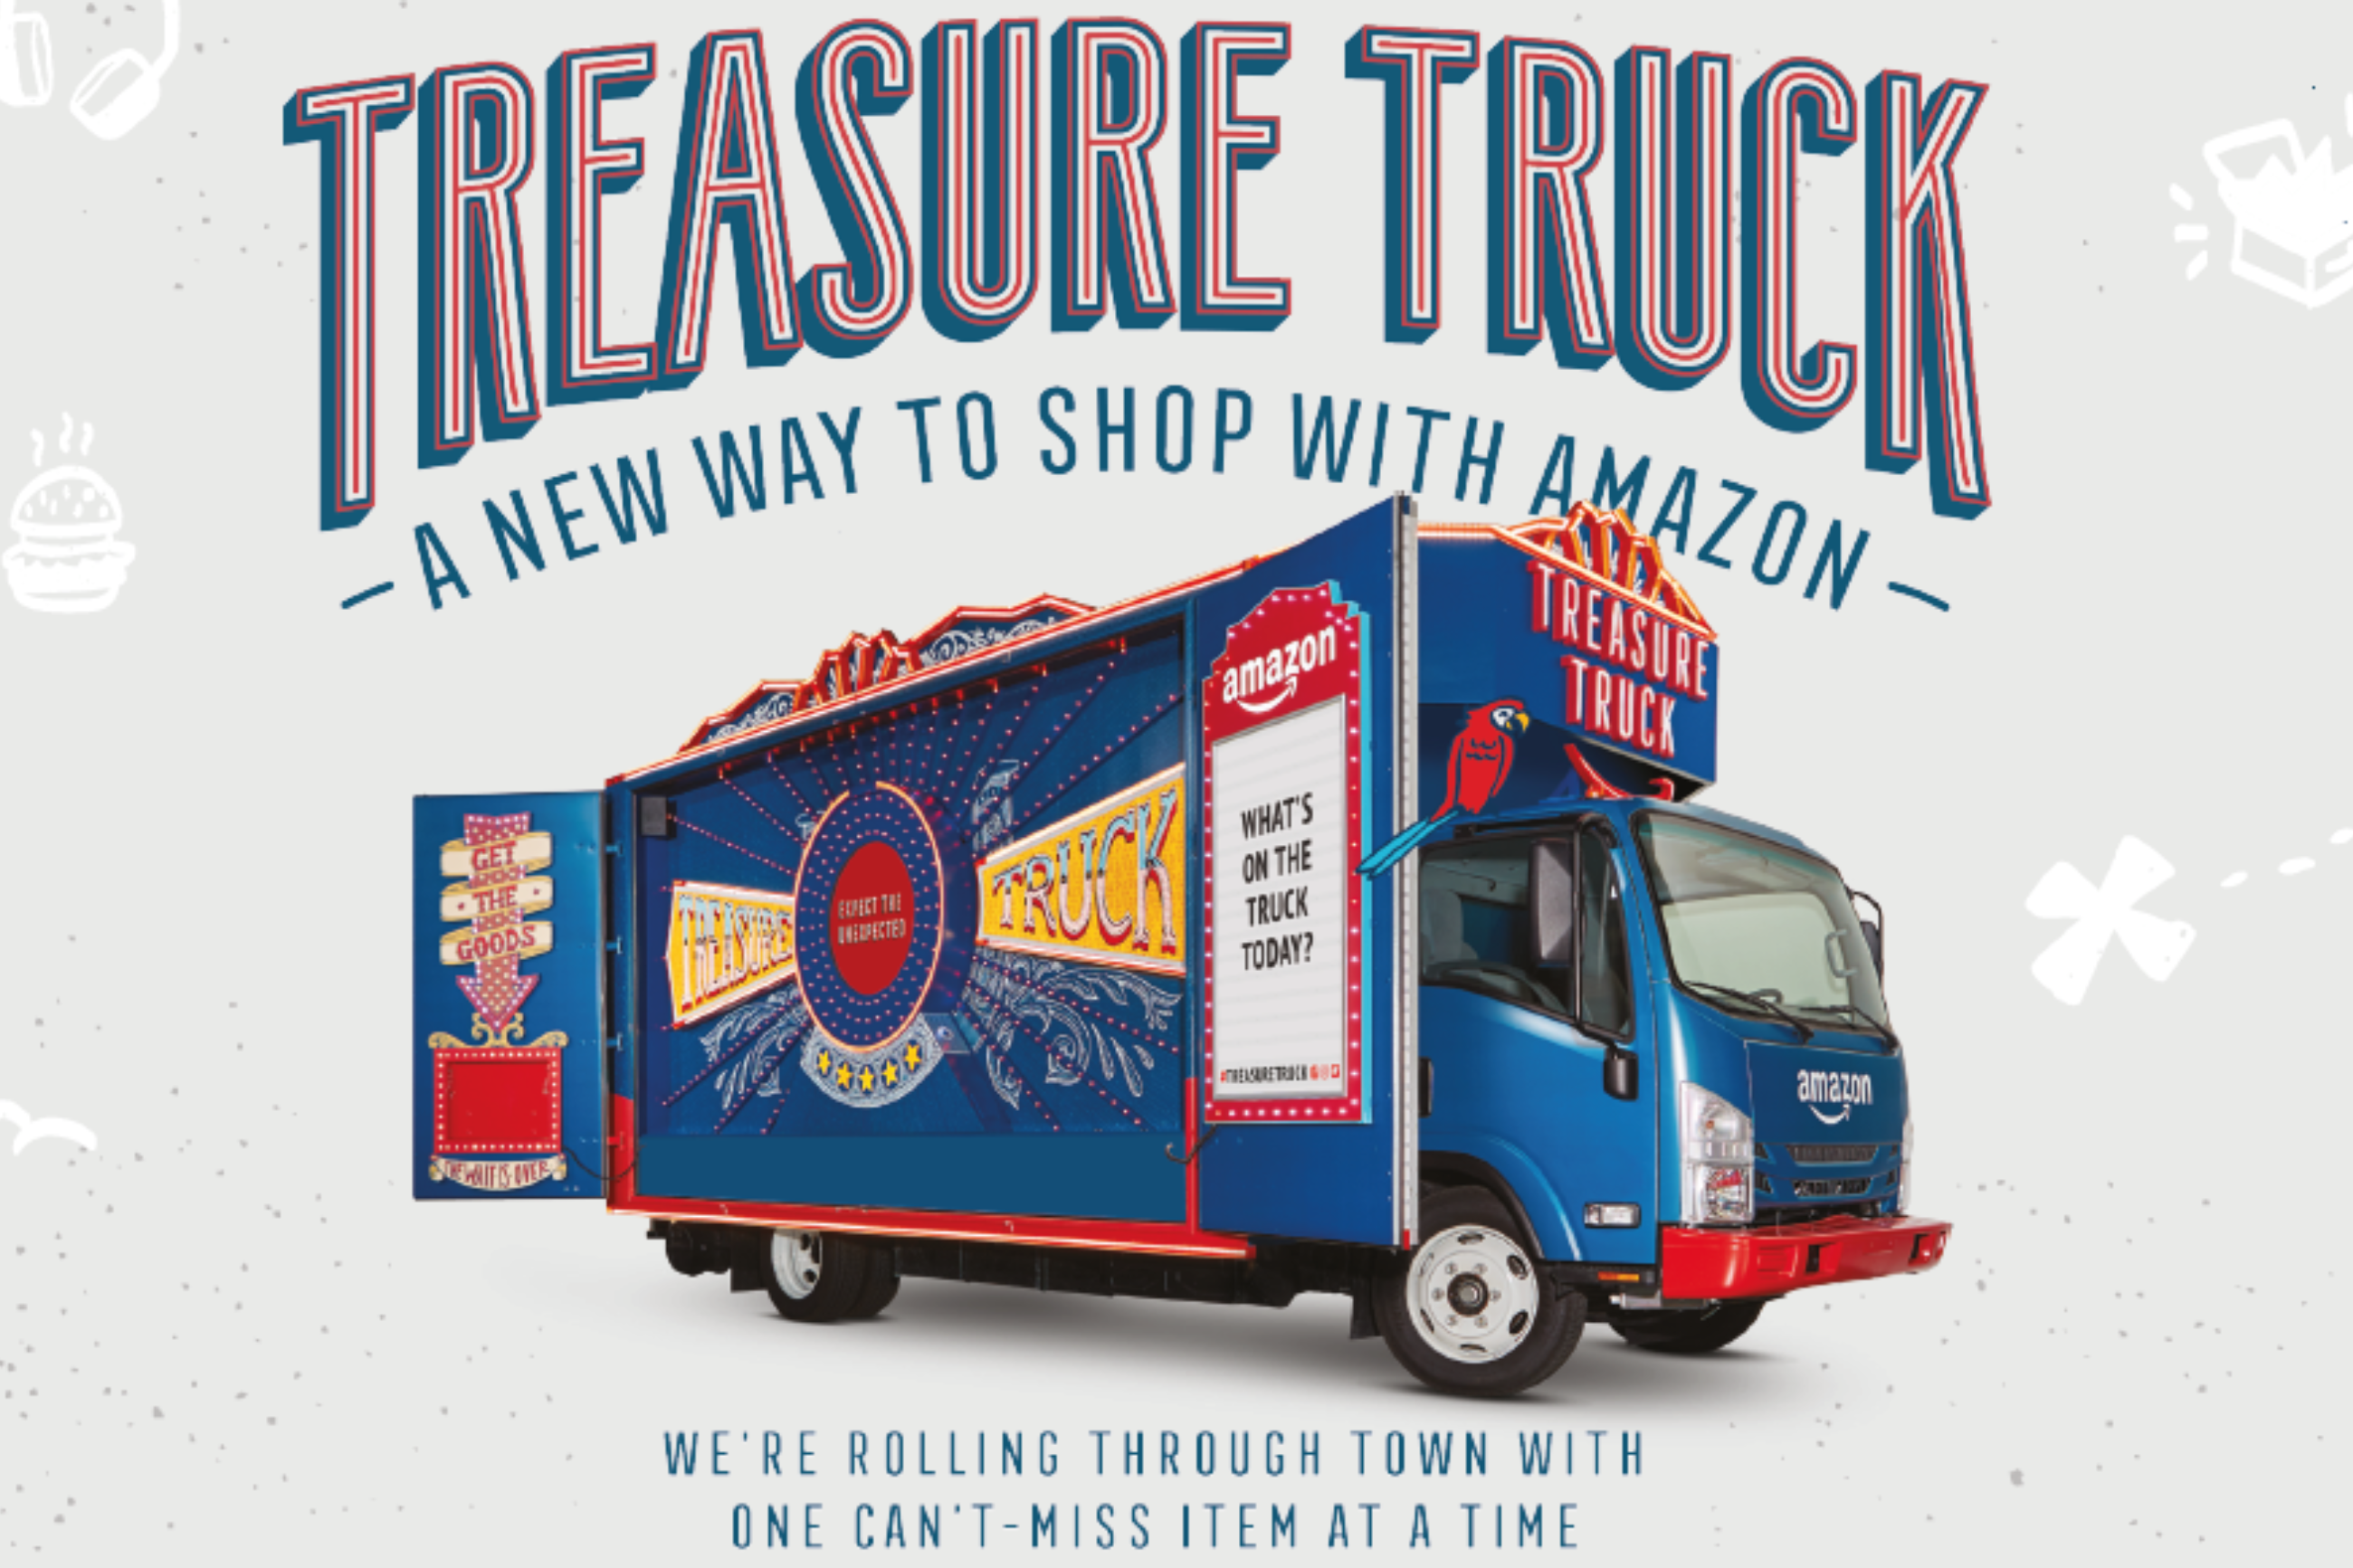 Amazon Treasure Truck Pulls in to White City Place — White